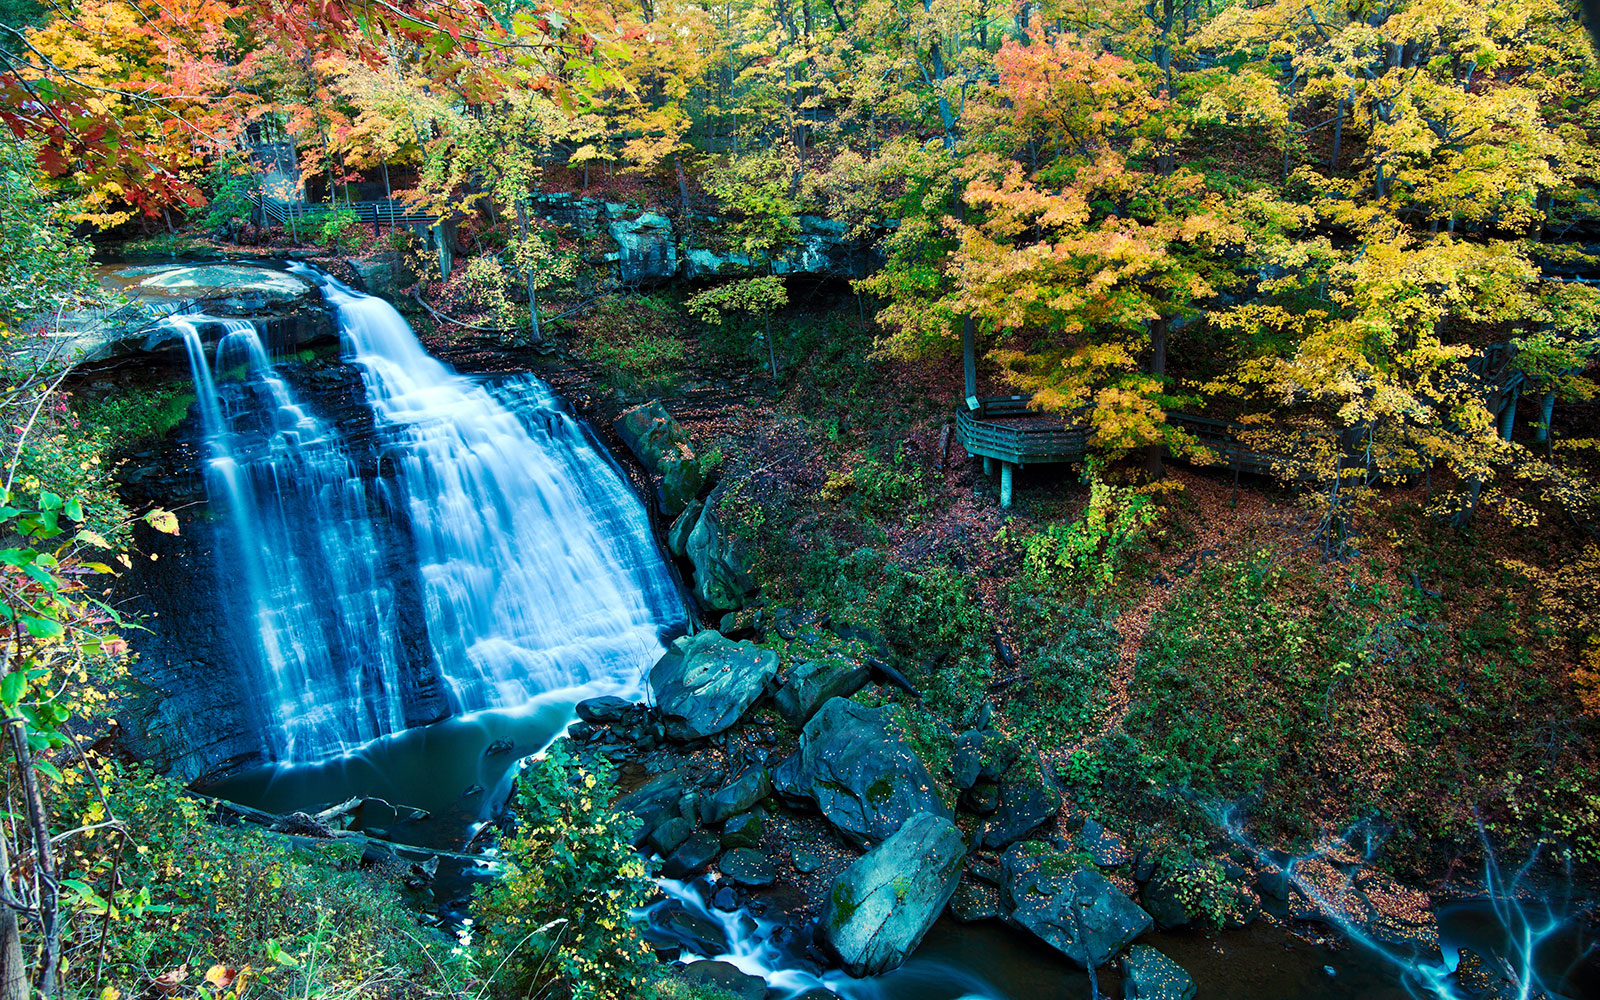 America's Best Secret National Parks: Cuyahoga Valley National Park